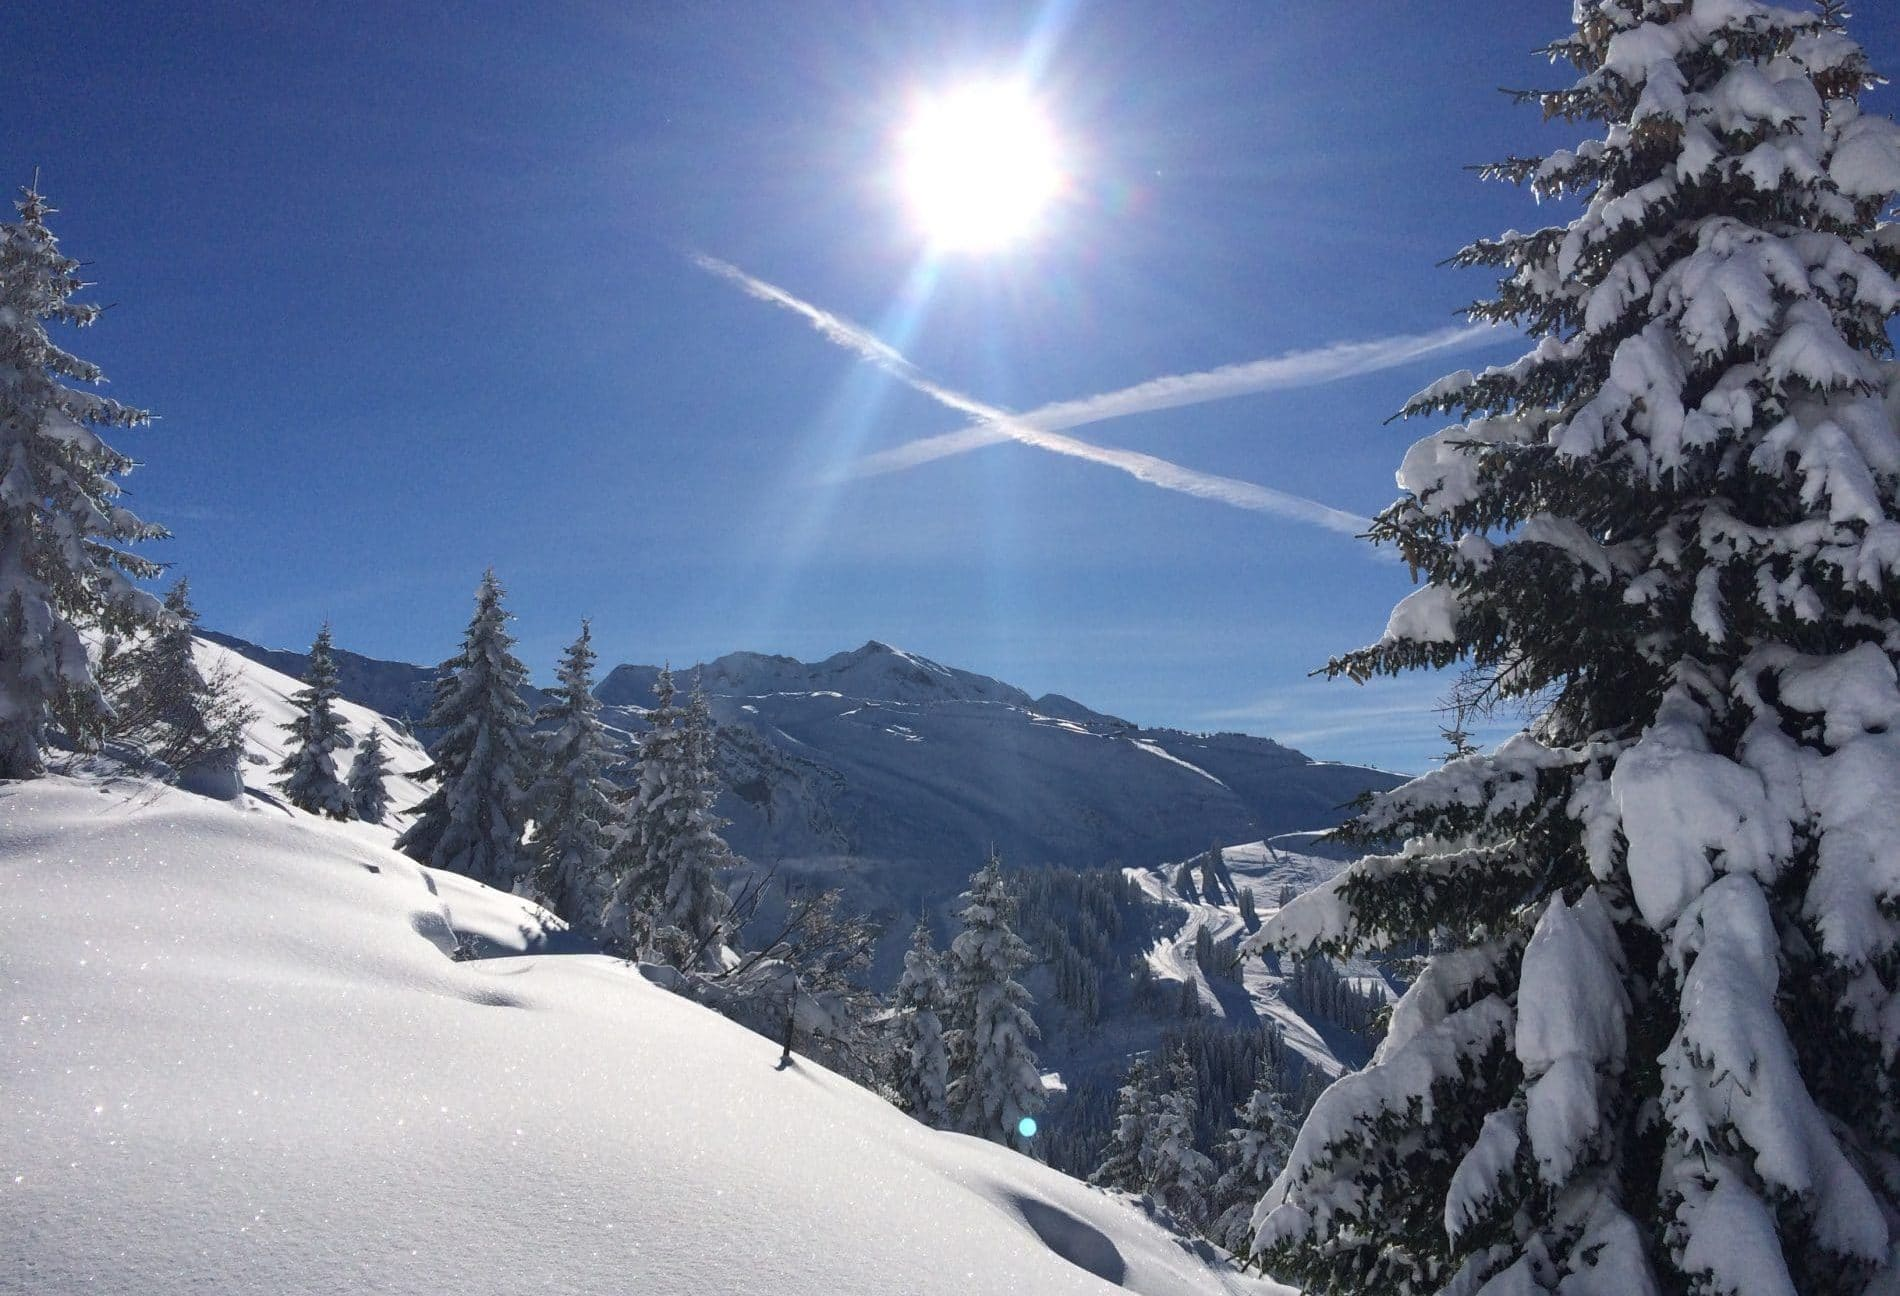 <div>CORONAVIRUS FAQs & YOUR SNOWBOARD / SKI HOLIDAY</div>